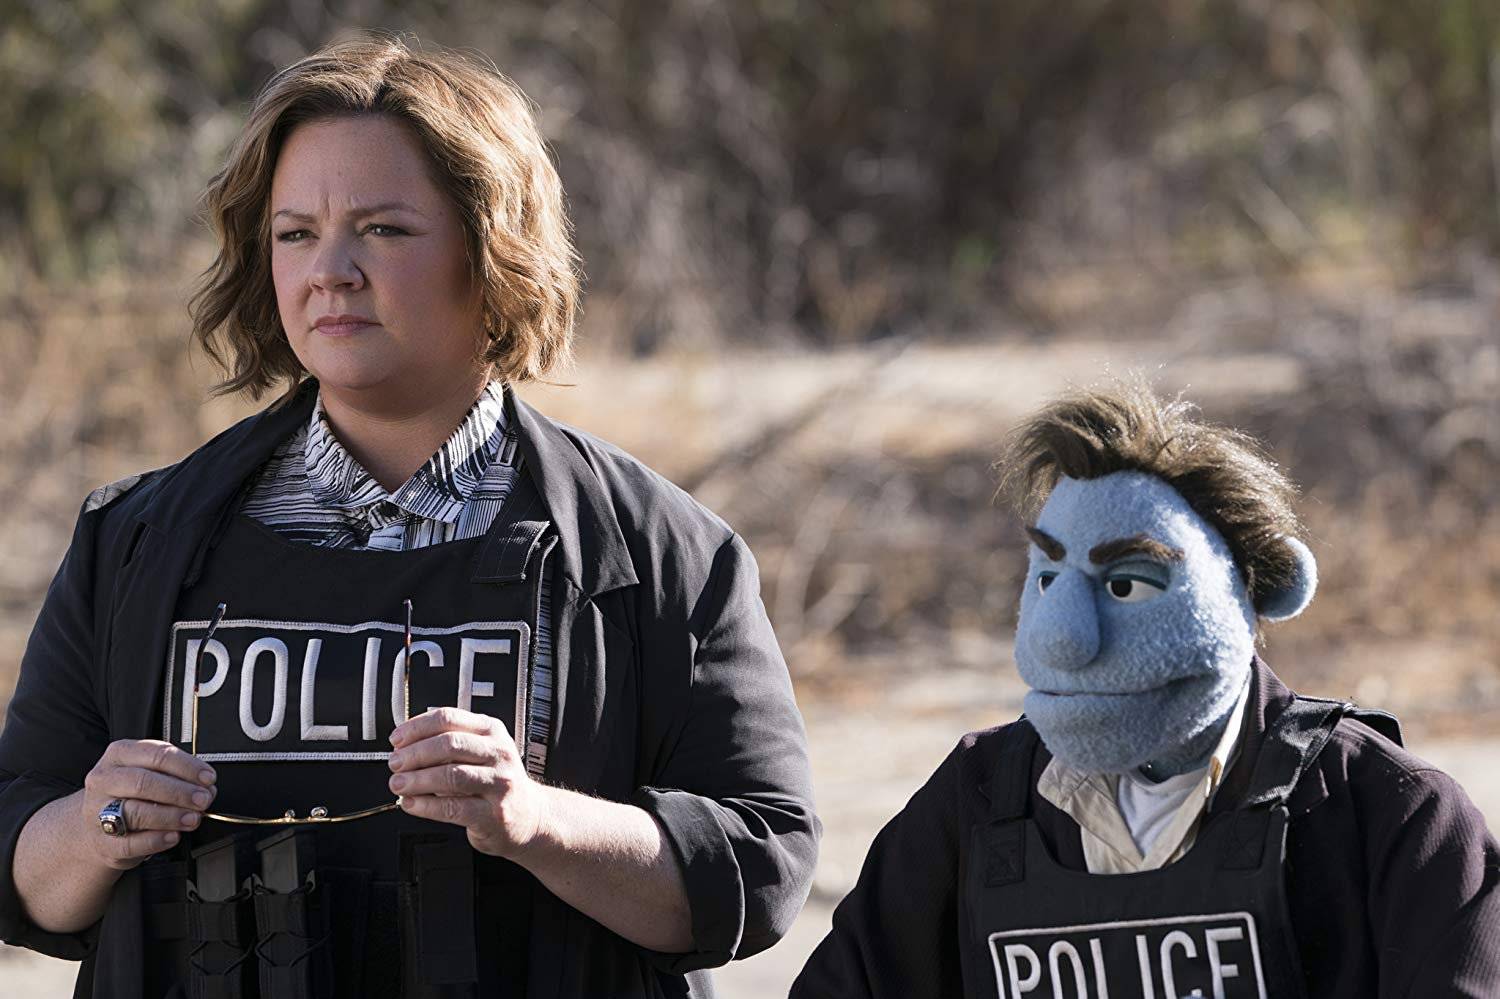 Golden Raspberry Awards: Melissa McCarthy wins Razzie alongside Oscar nomination